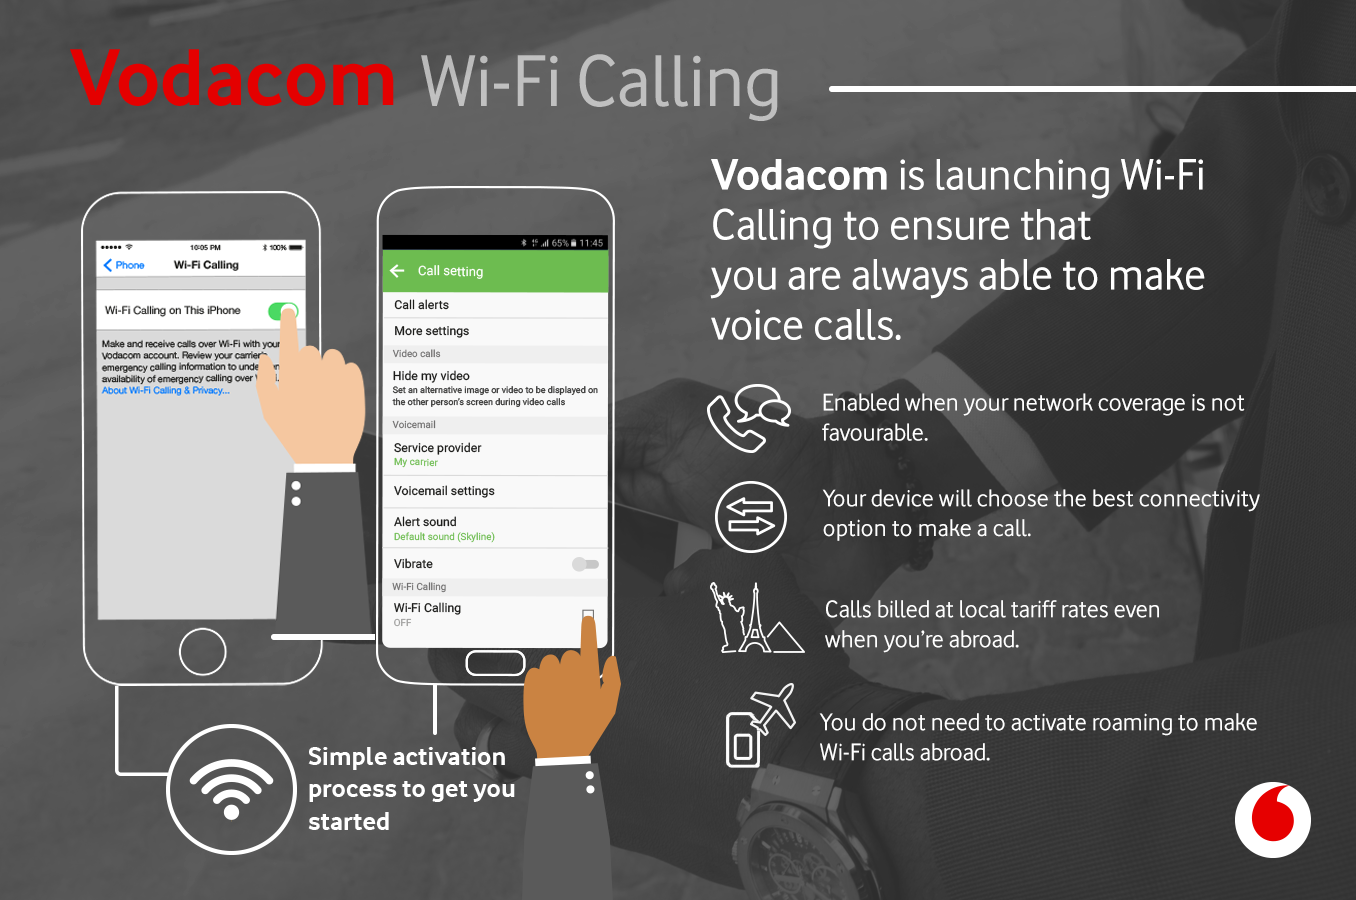 Vodacom Now!: Stay in touch with Wi-Fi Calling from Vodacom